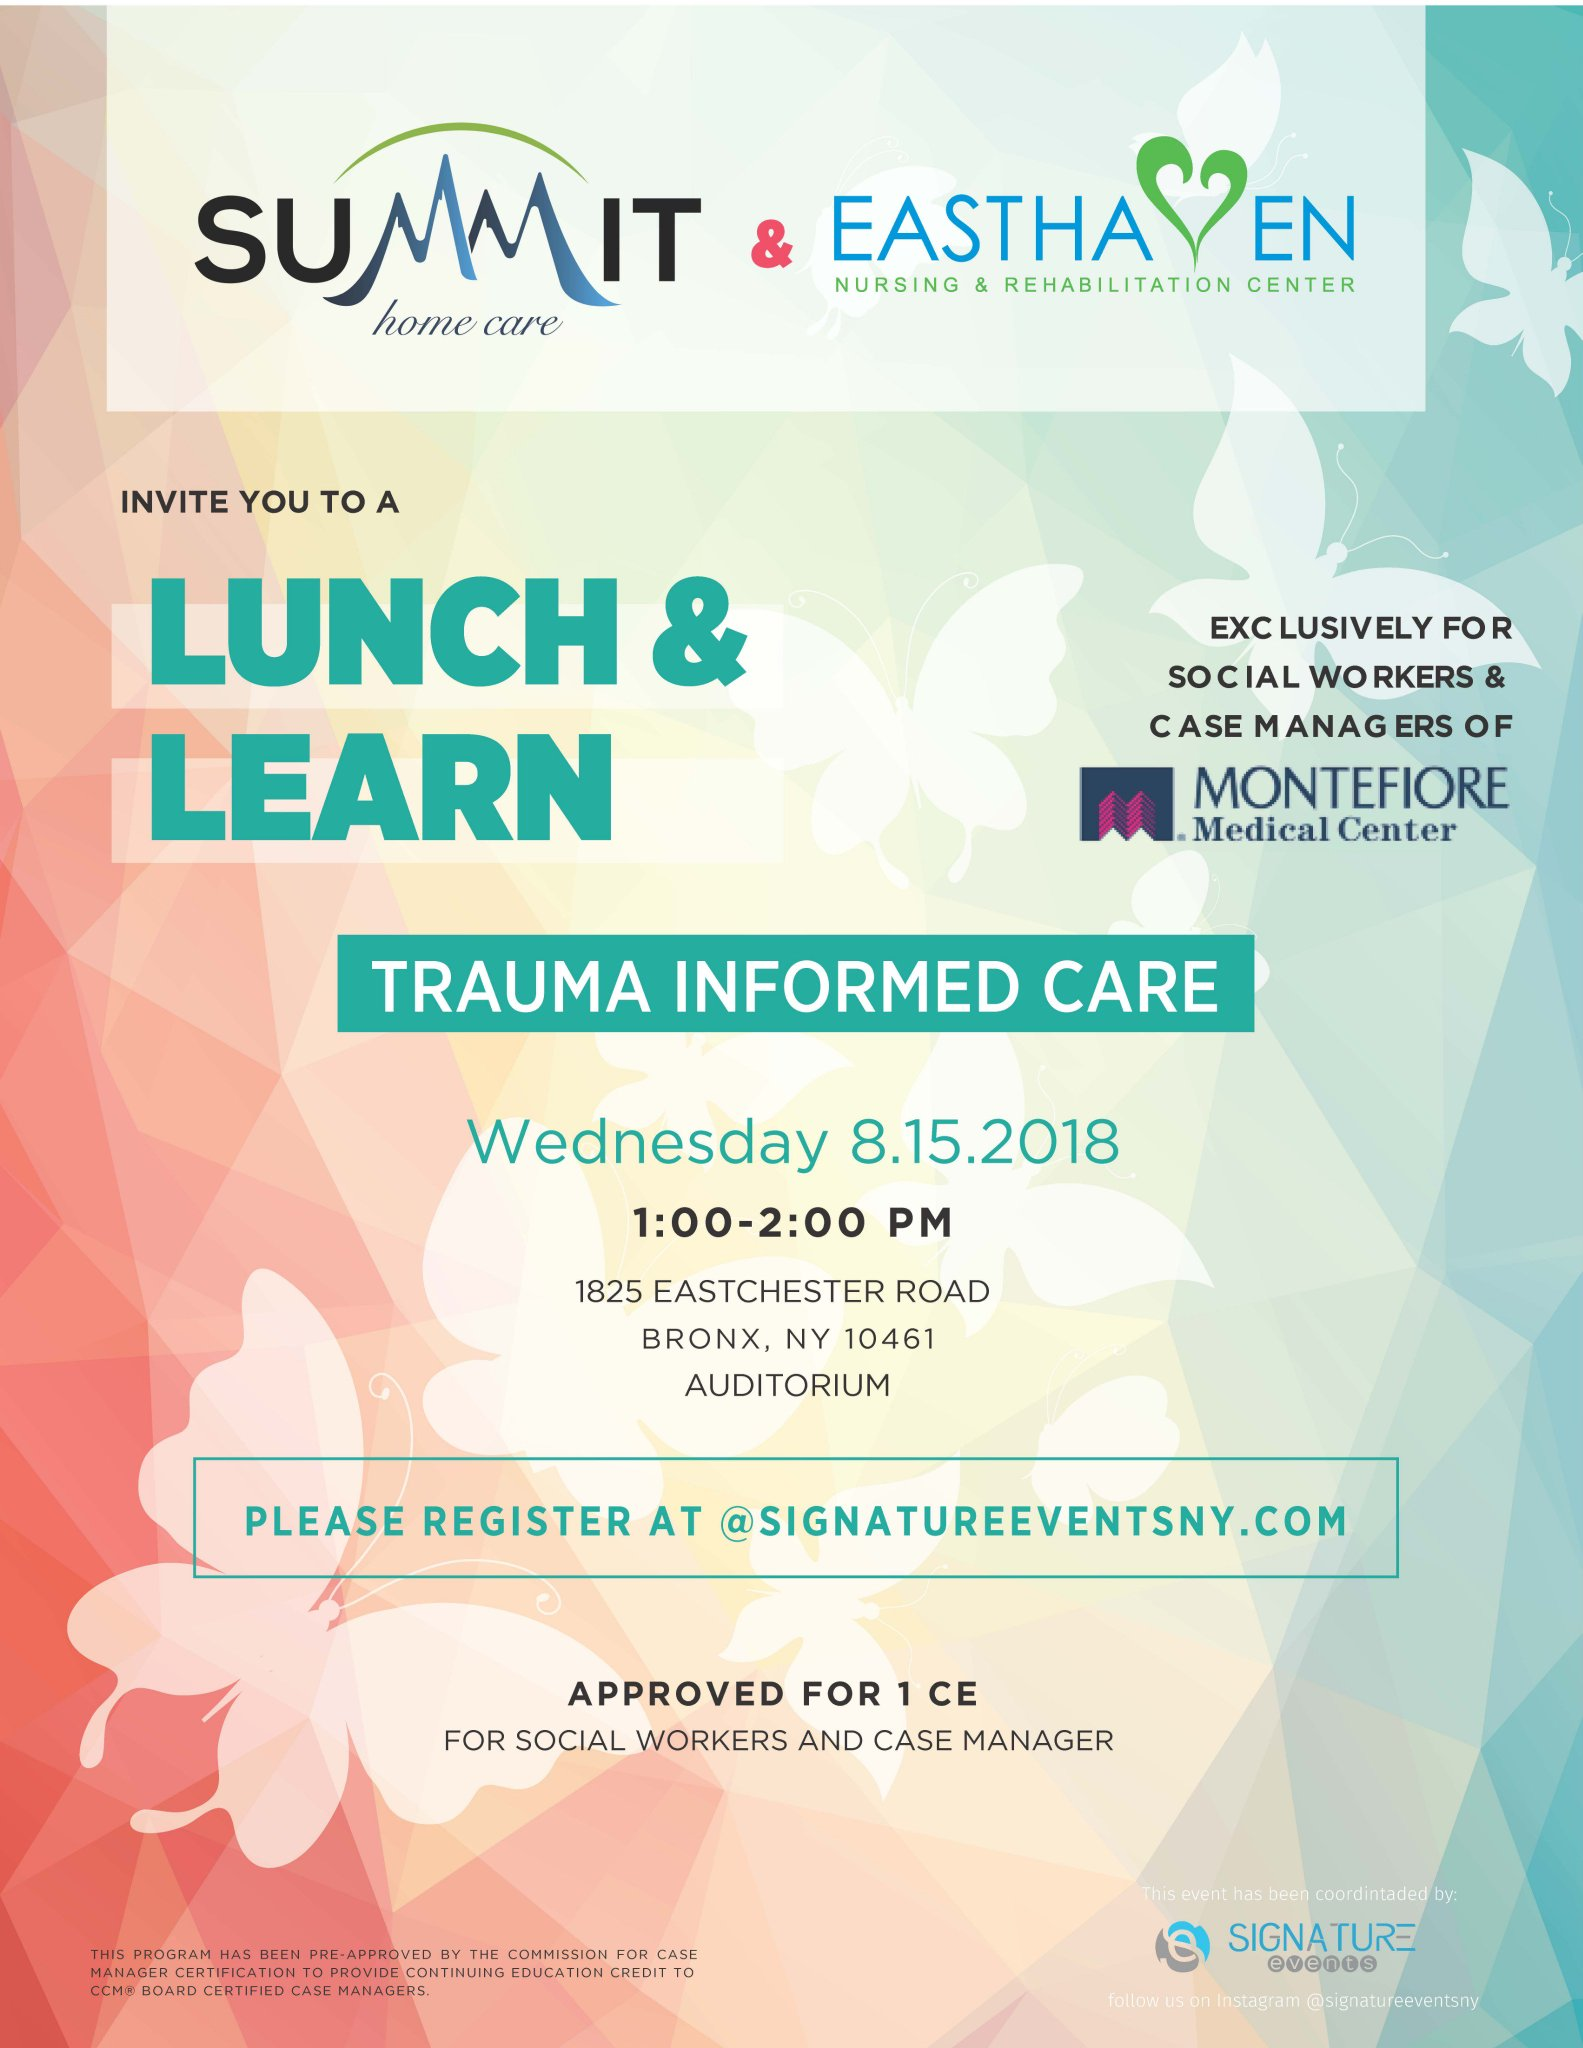 Summit_Home_Care on Twitter: